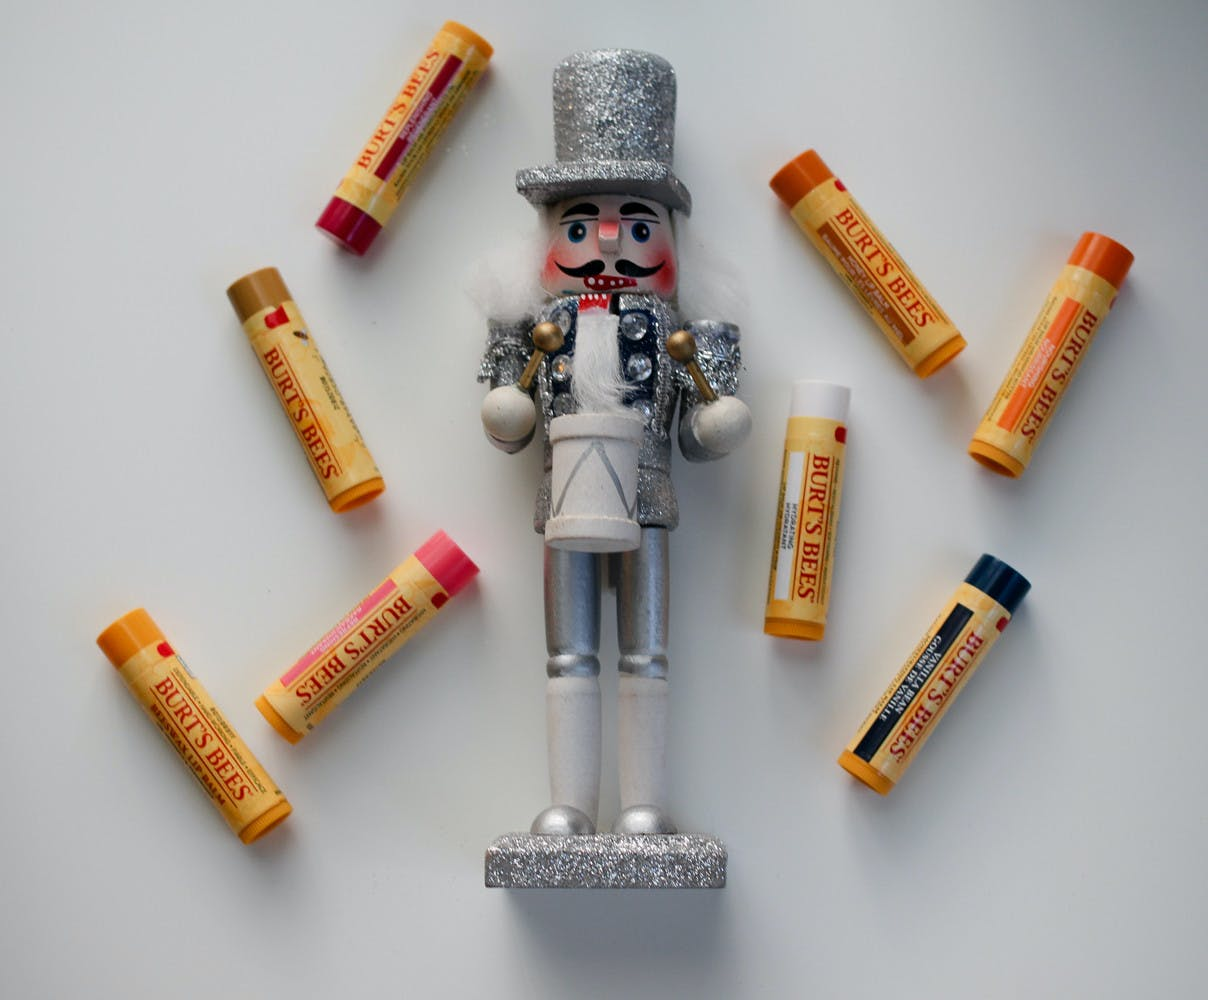 #UncapFlavour with Burt's Bees lip balm